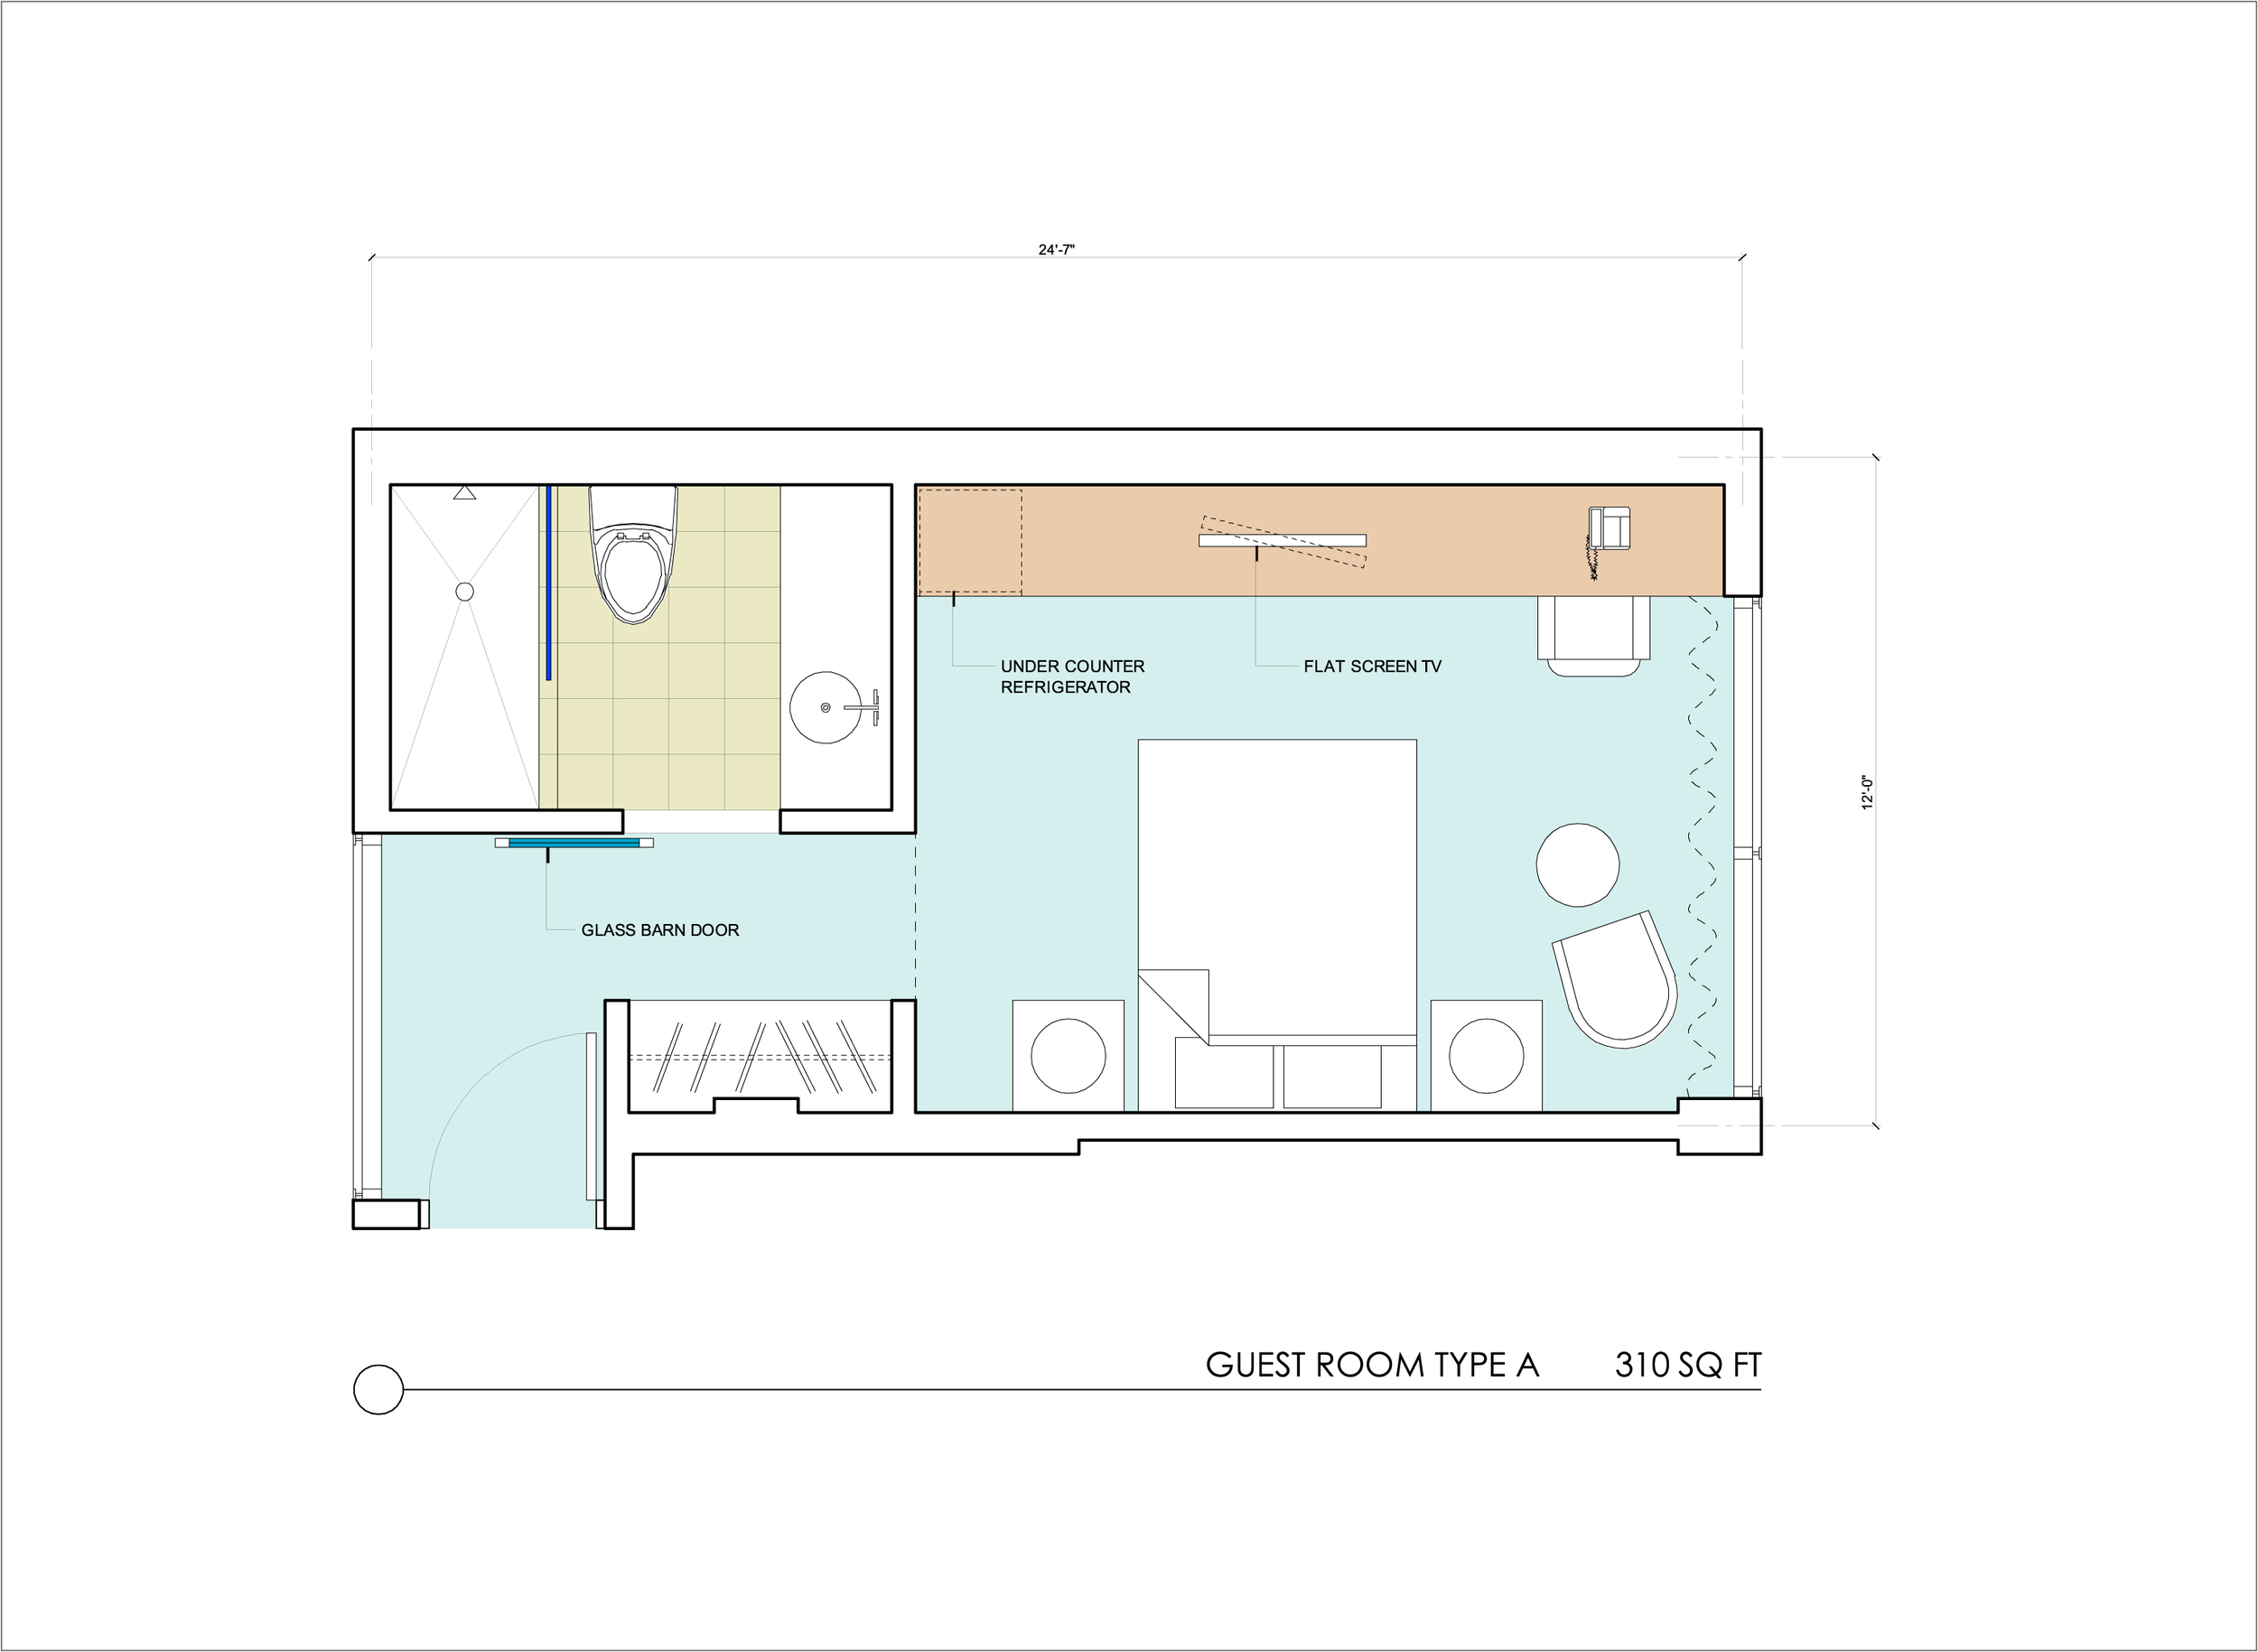 TYPICAL GUEST ROOM PLAN